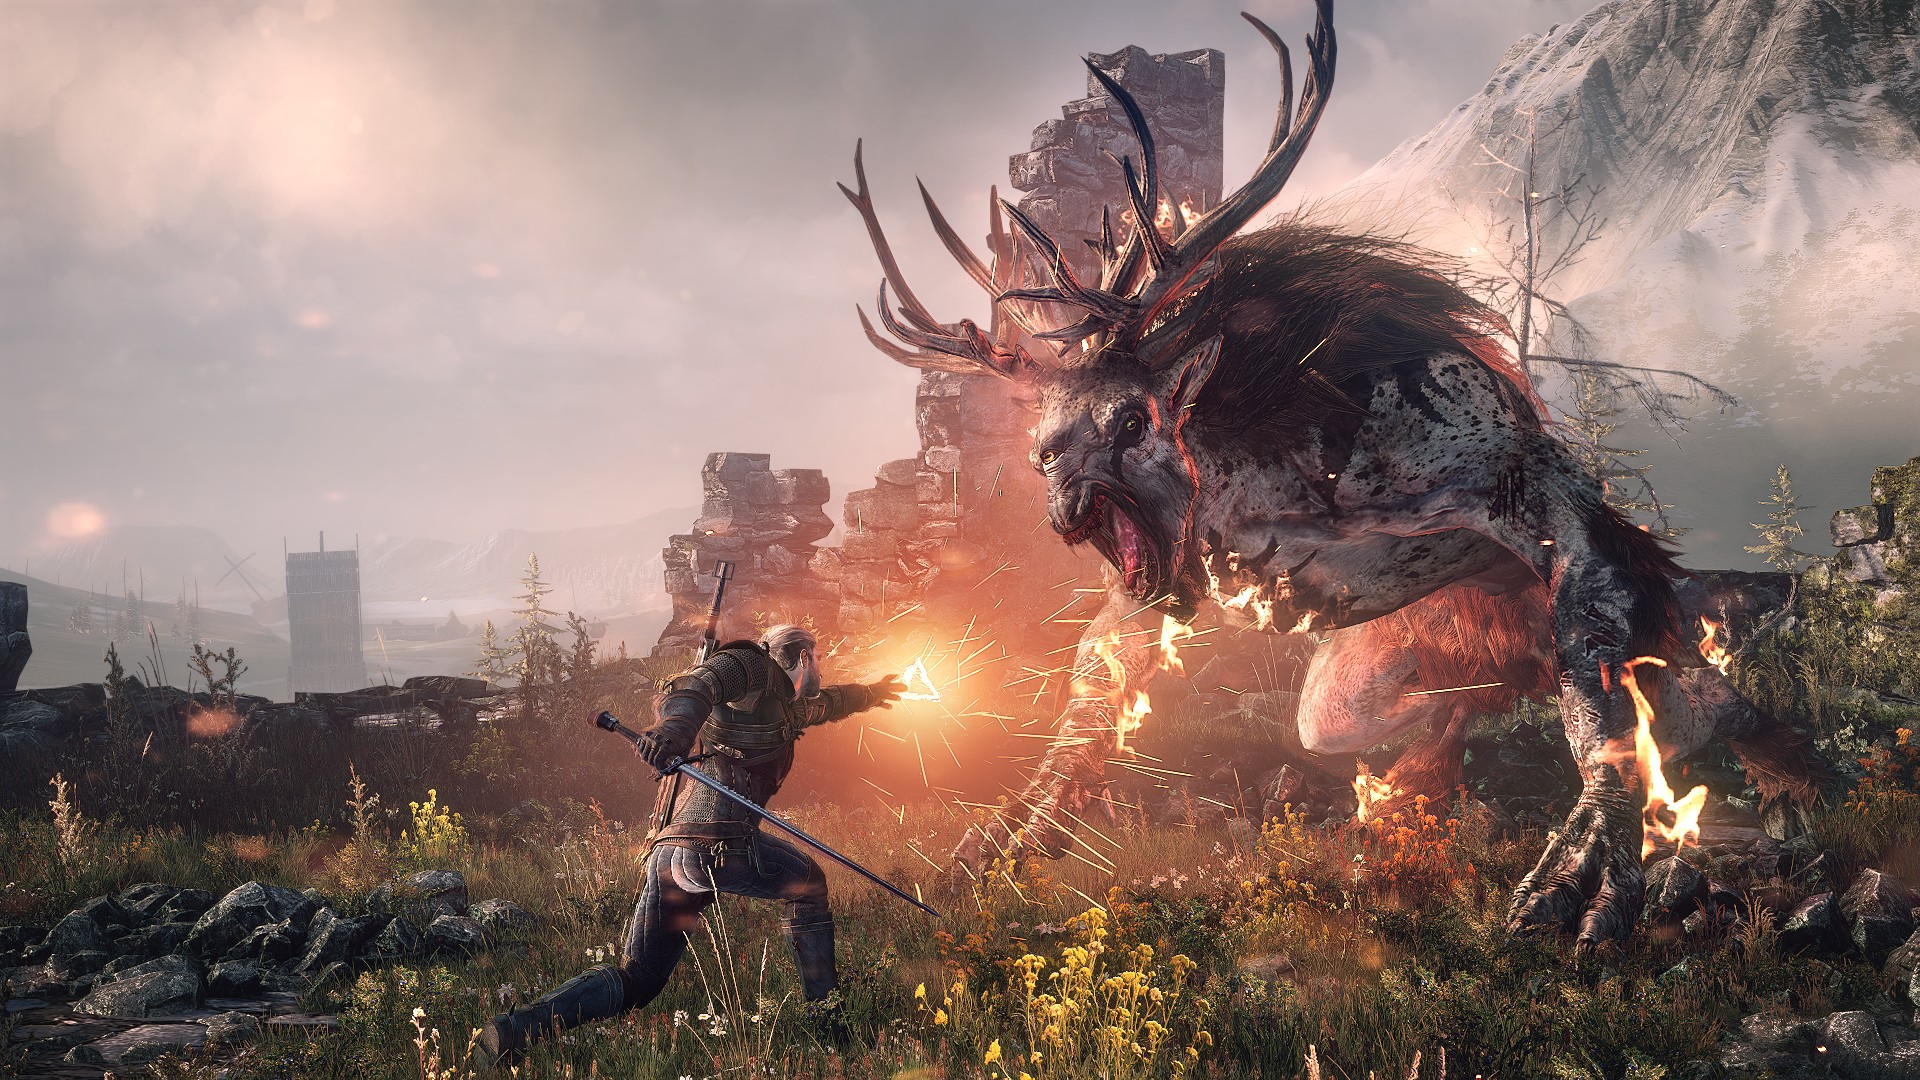 Witcher 3 Devs Hint At A Possible Fourth Game Witcher 3 001